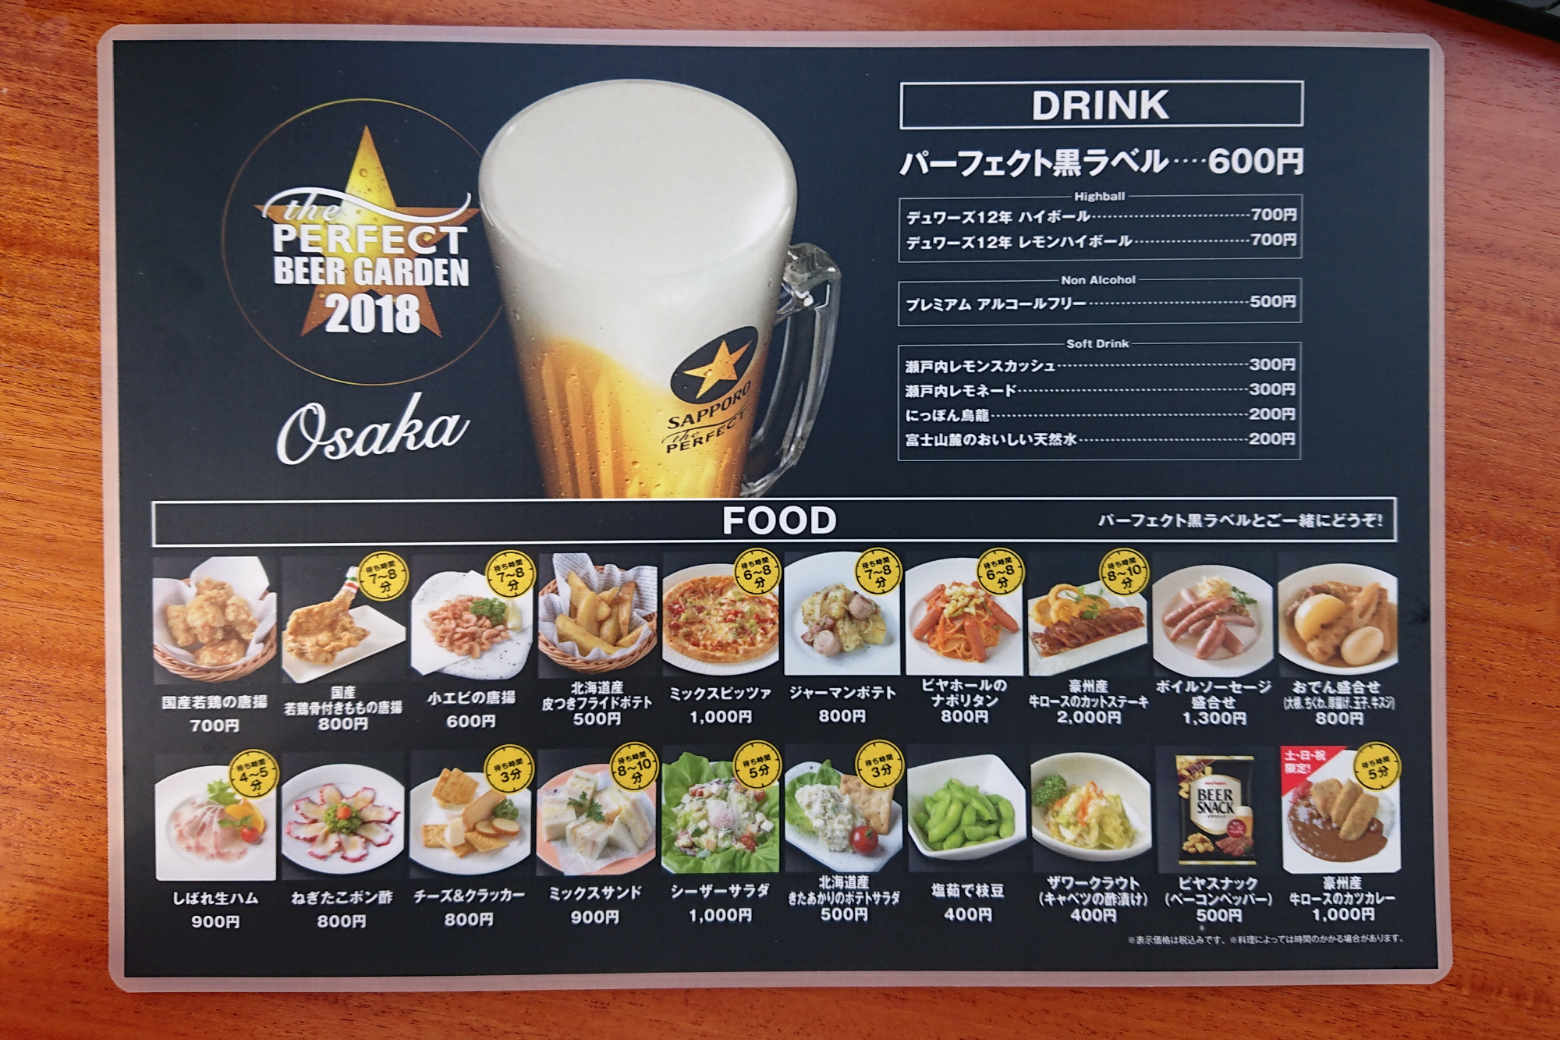 THE PERFECT BEER GARDEN 2018 OSAKAのメニュー